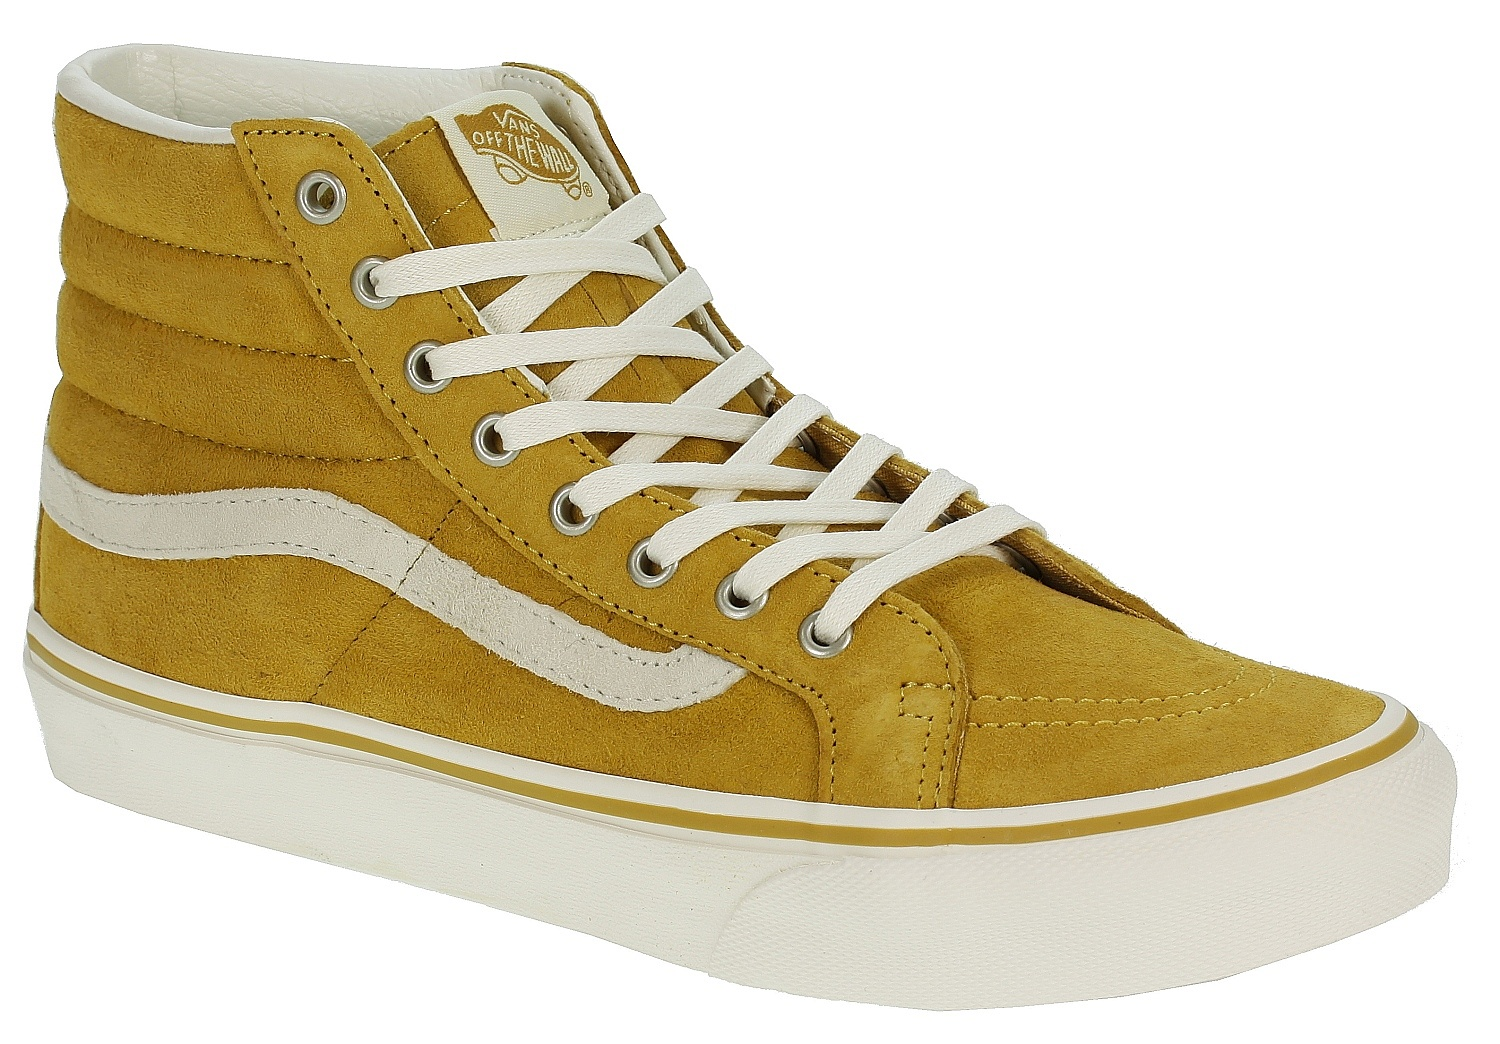 00e81d59d3 shoes Vans Sk8-Hi Slim - Scotchgard Amber Gold Marshmallow - Snowboard  shop